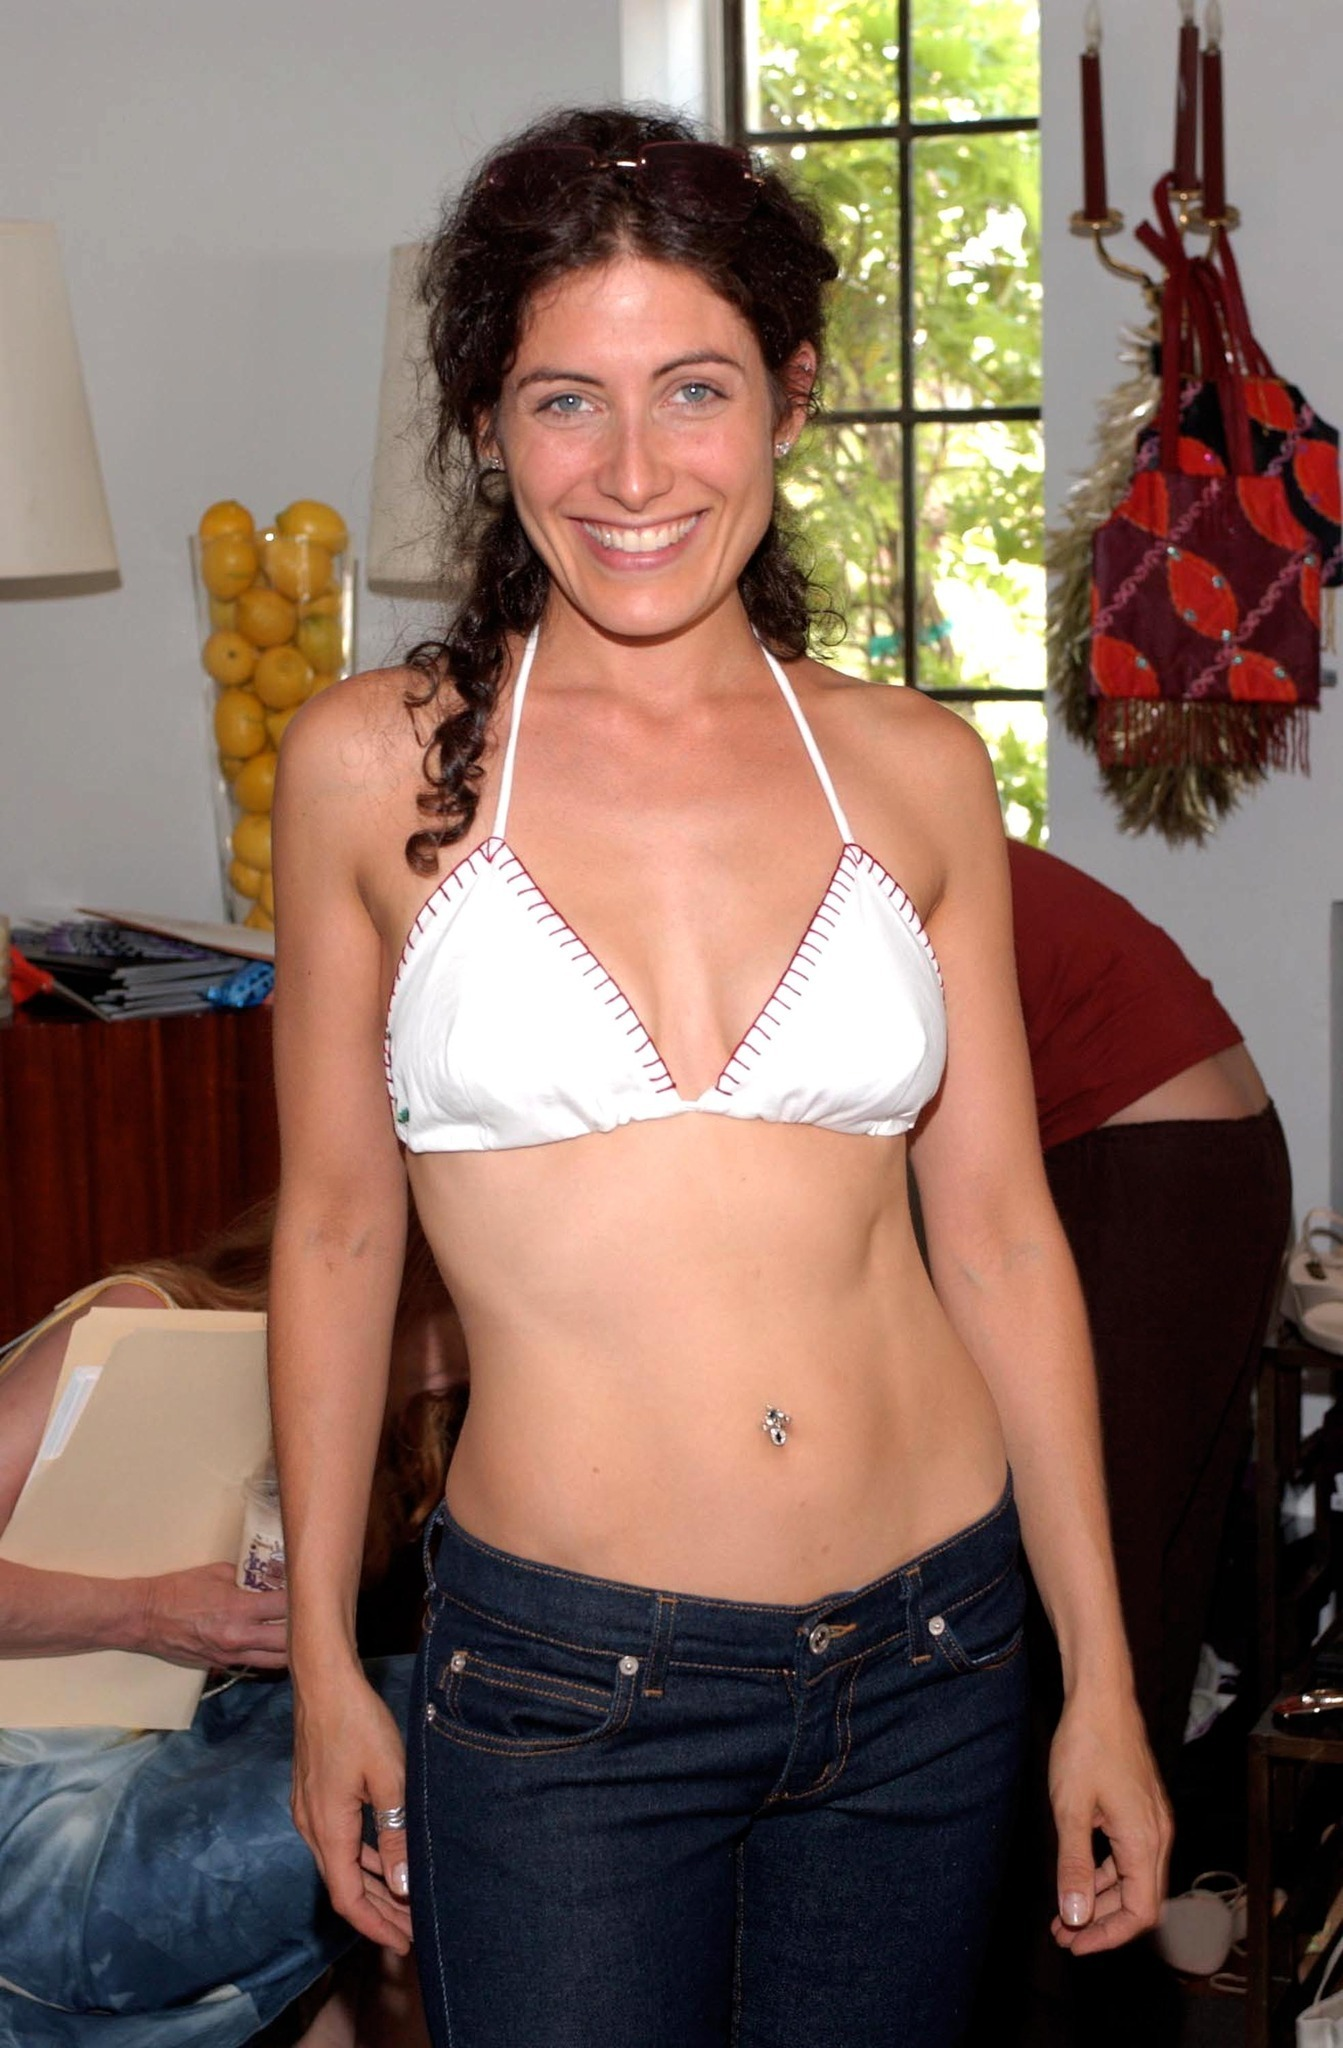 Lisa Edelstein at Juicy Couture At The castillo, chateau Marmont (07.27.2001)